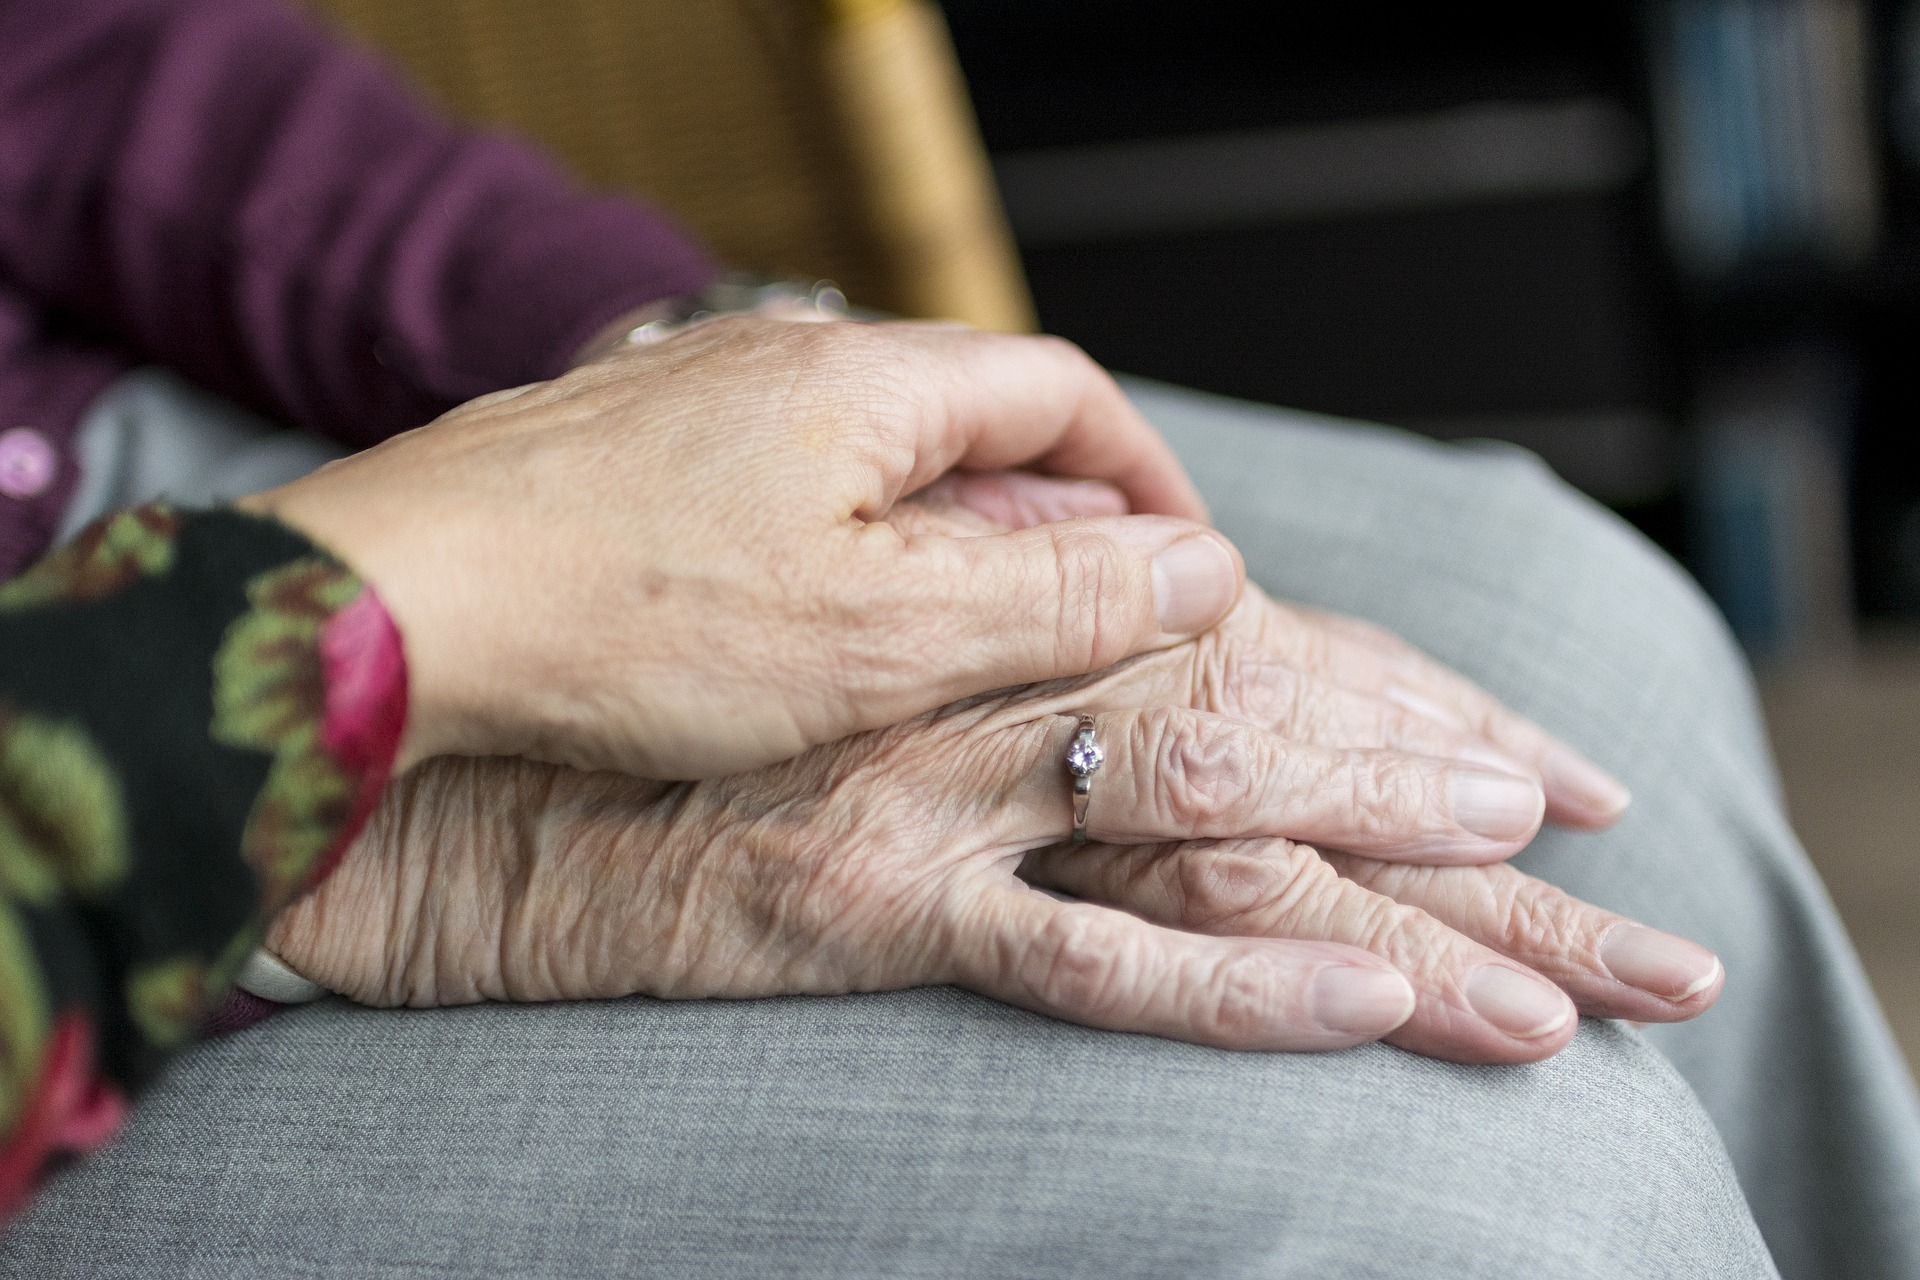 Care provider fined £200,000 after unsafe care contributes to vulnerable woman's injury